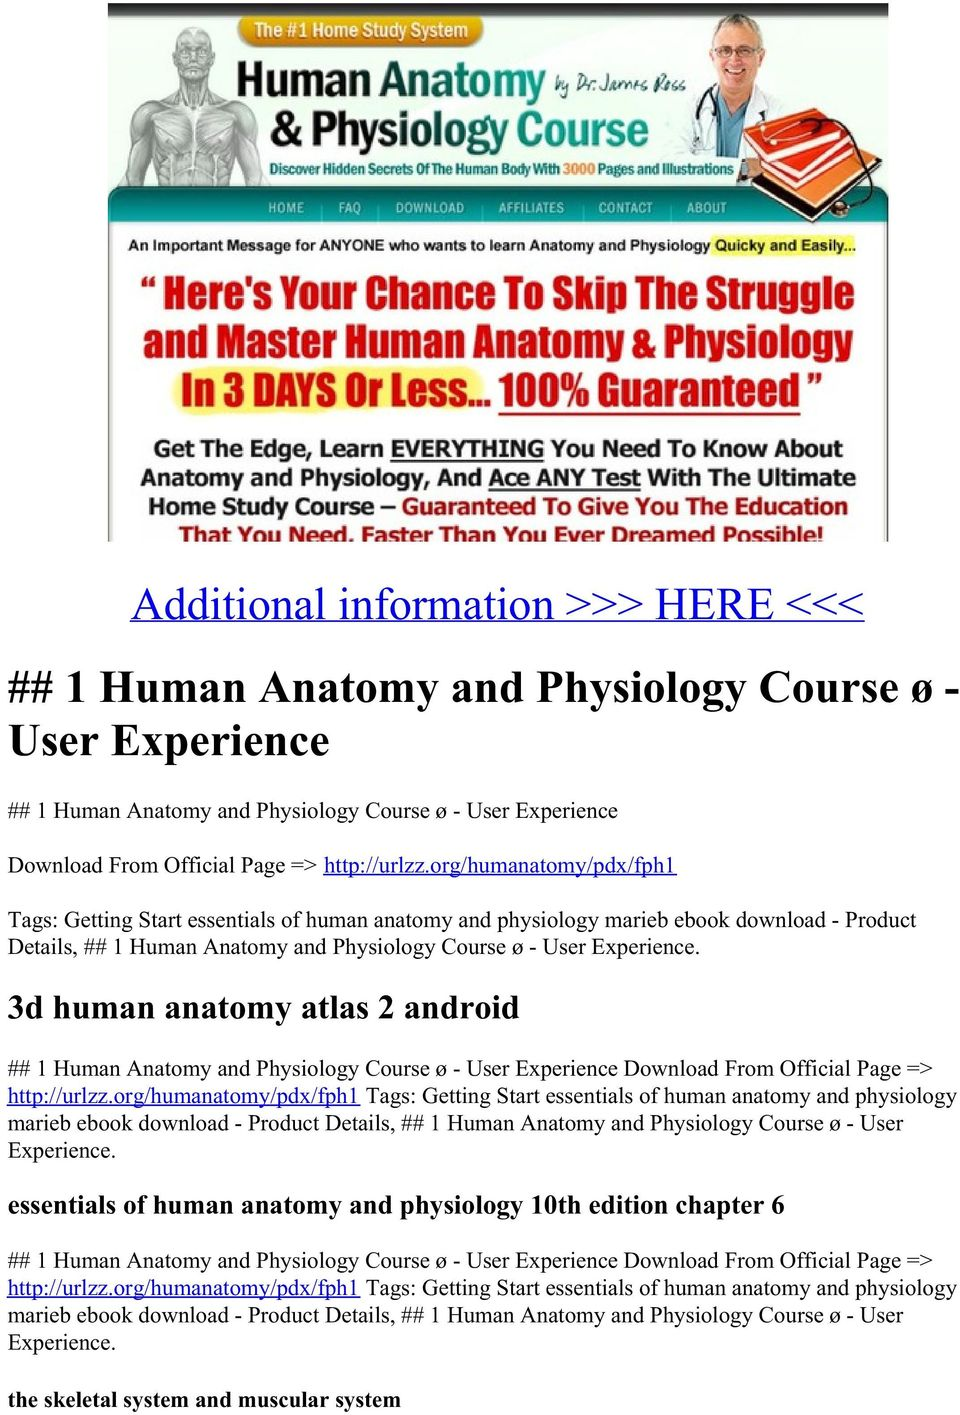 additional information >>> here <<< human anatomy and org humanatomy pdx fph1 tags getting start essentials of human anatomy and